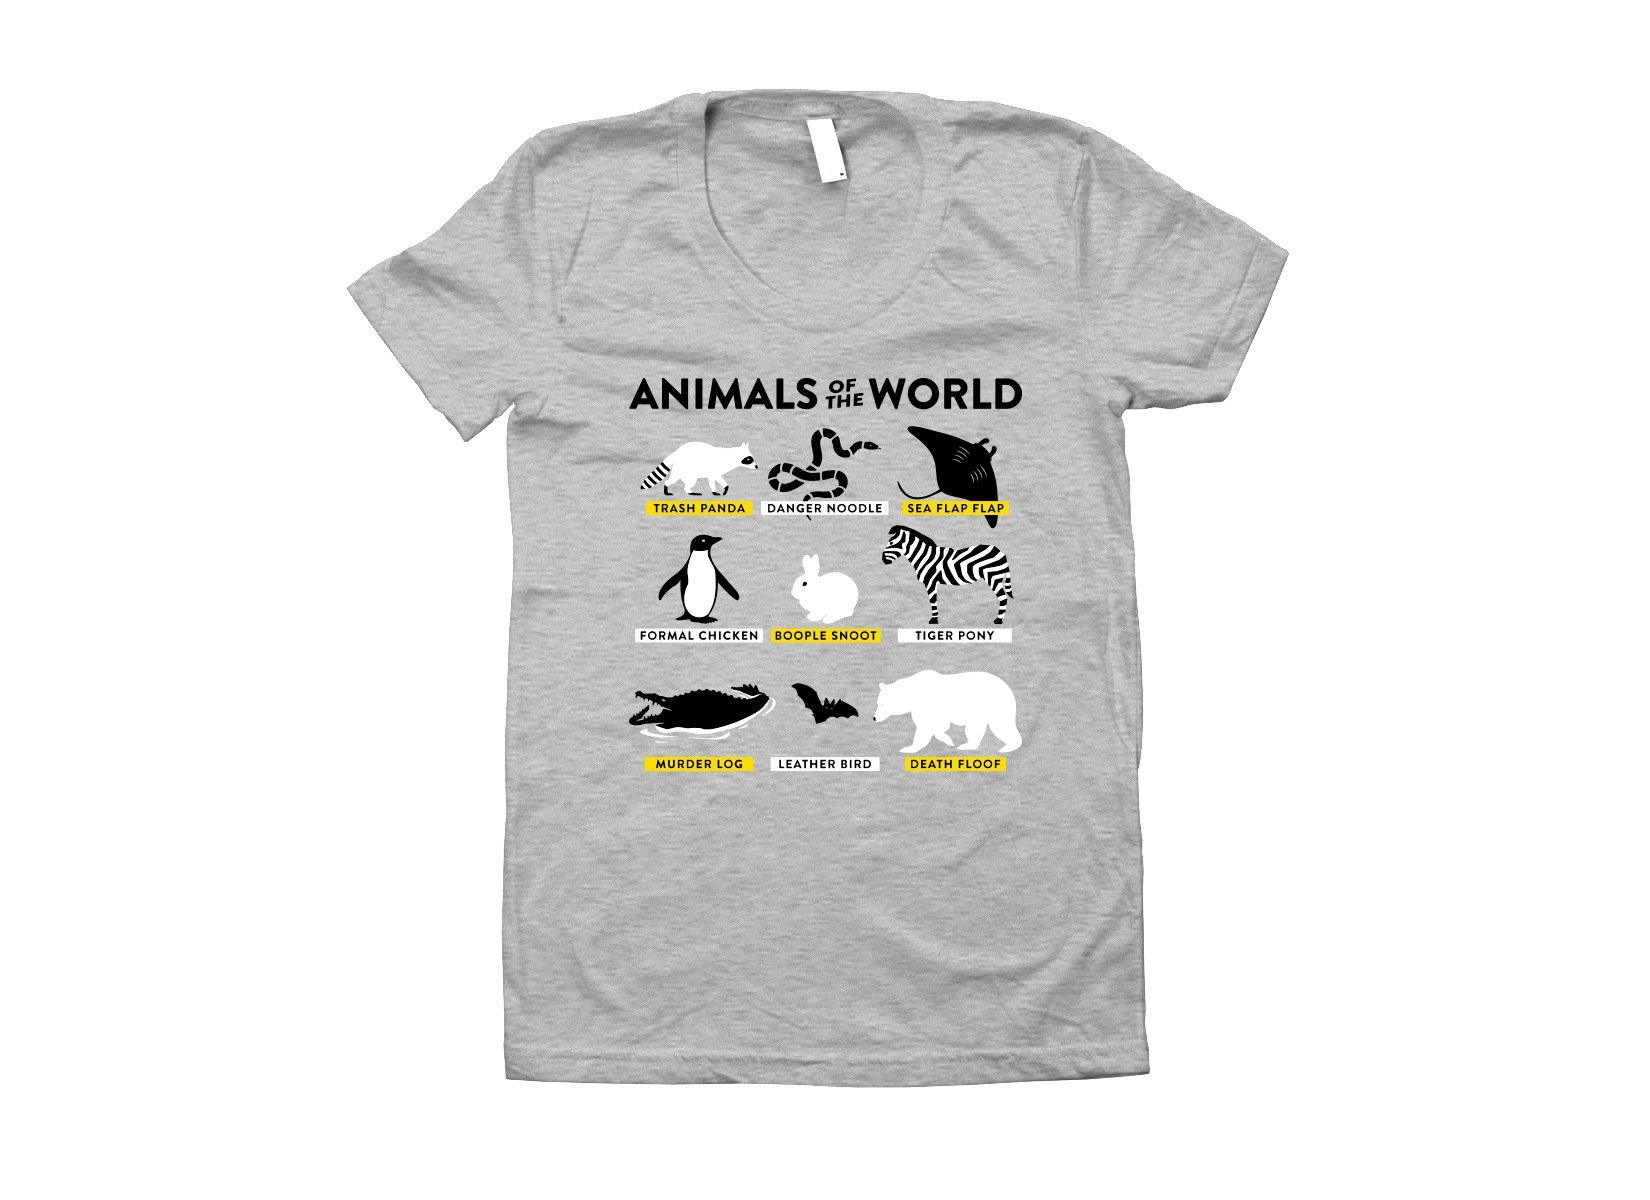 Animals Of The World on Juniors T-Shirt